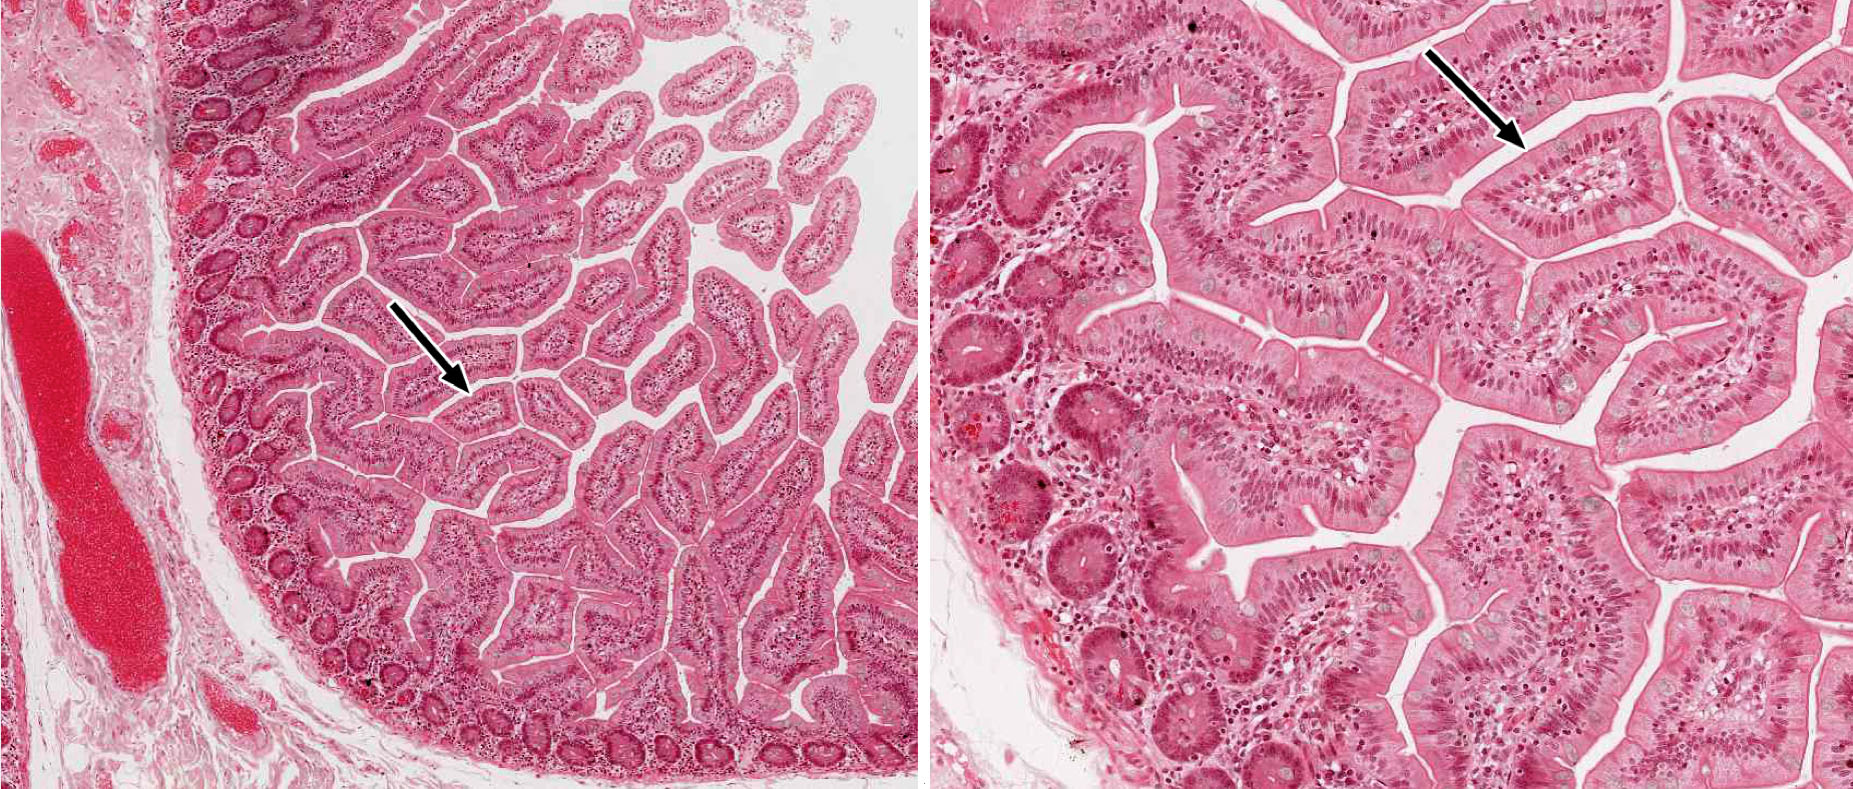 chicken muscle diagram 2002 nissan altima stereo wiring small and large intestine | histology